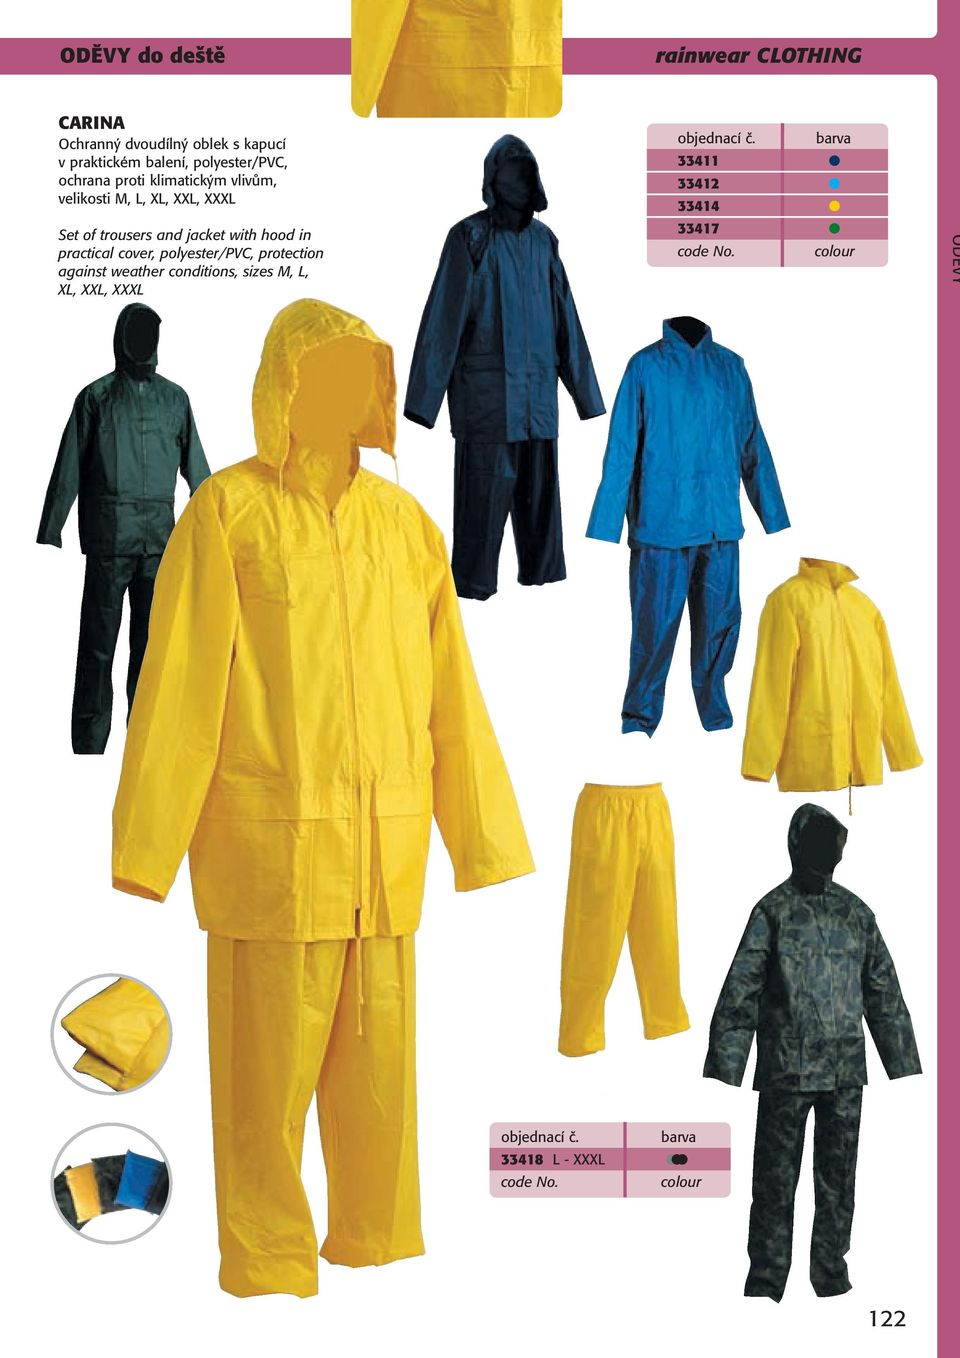 Set of trousers and jacket with hood in practical cover, polyester/pvc, protection